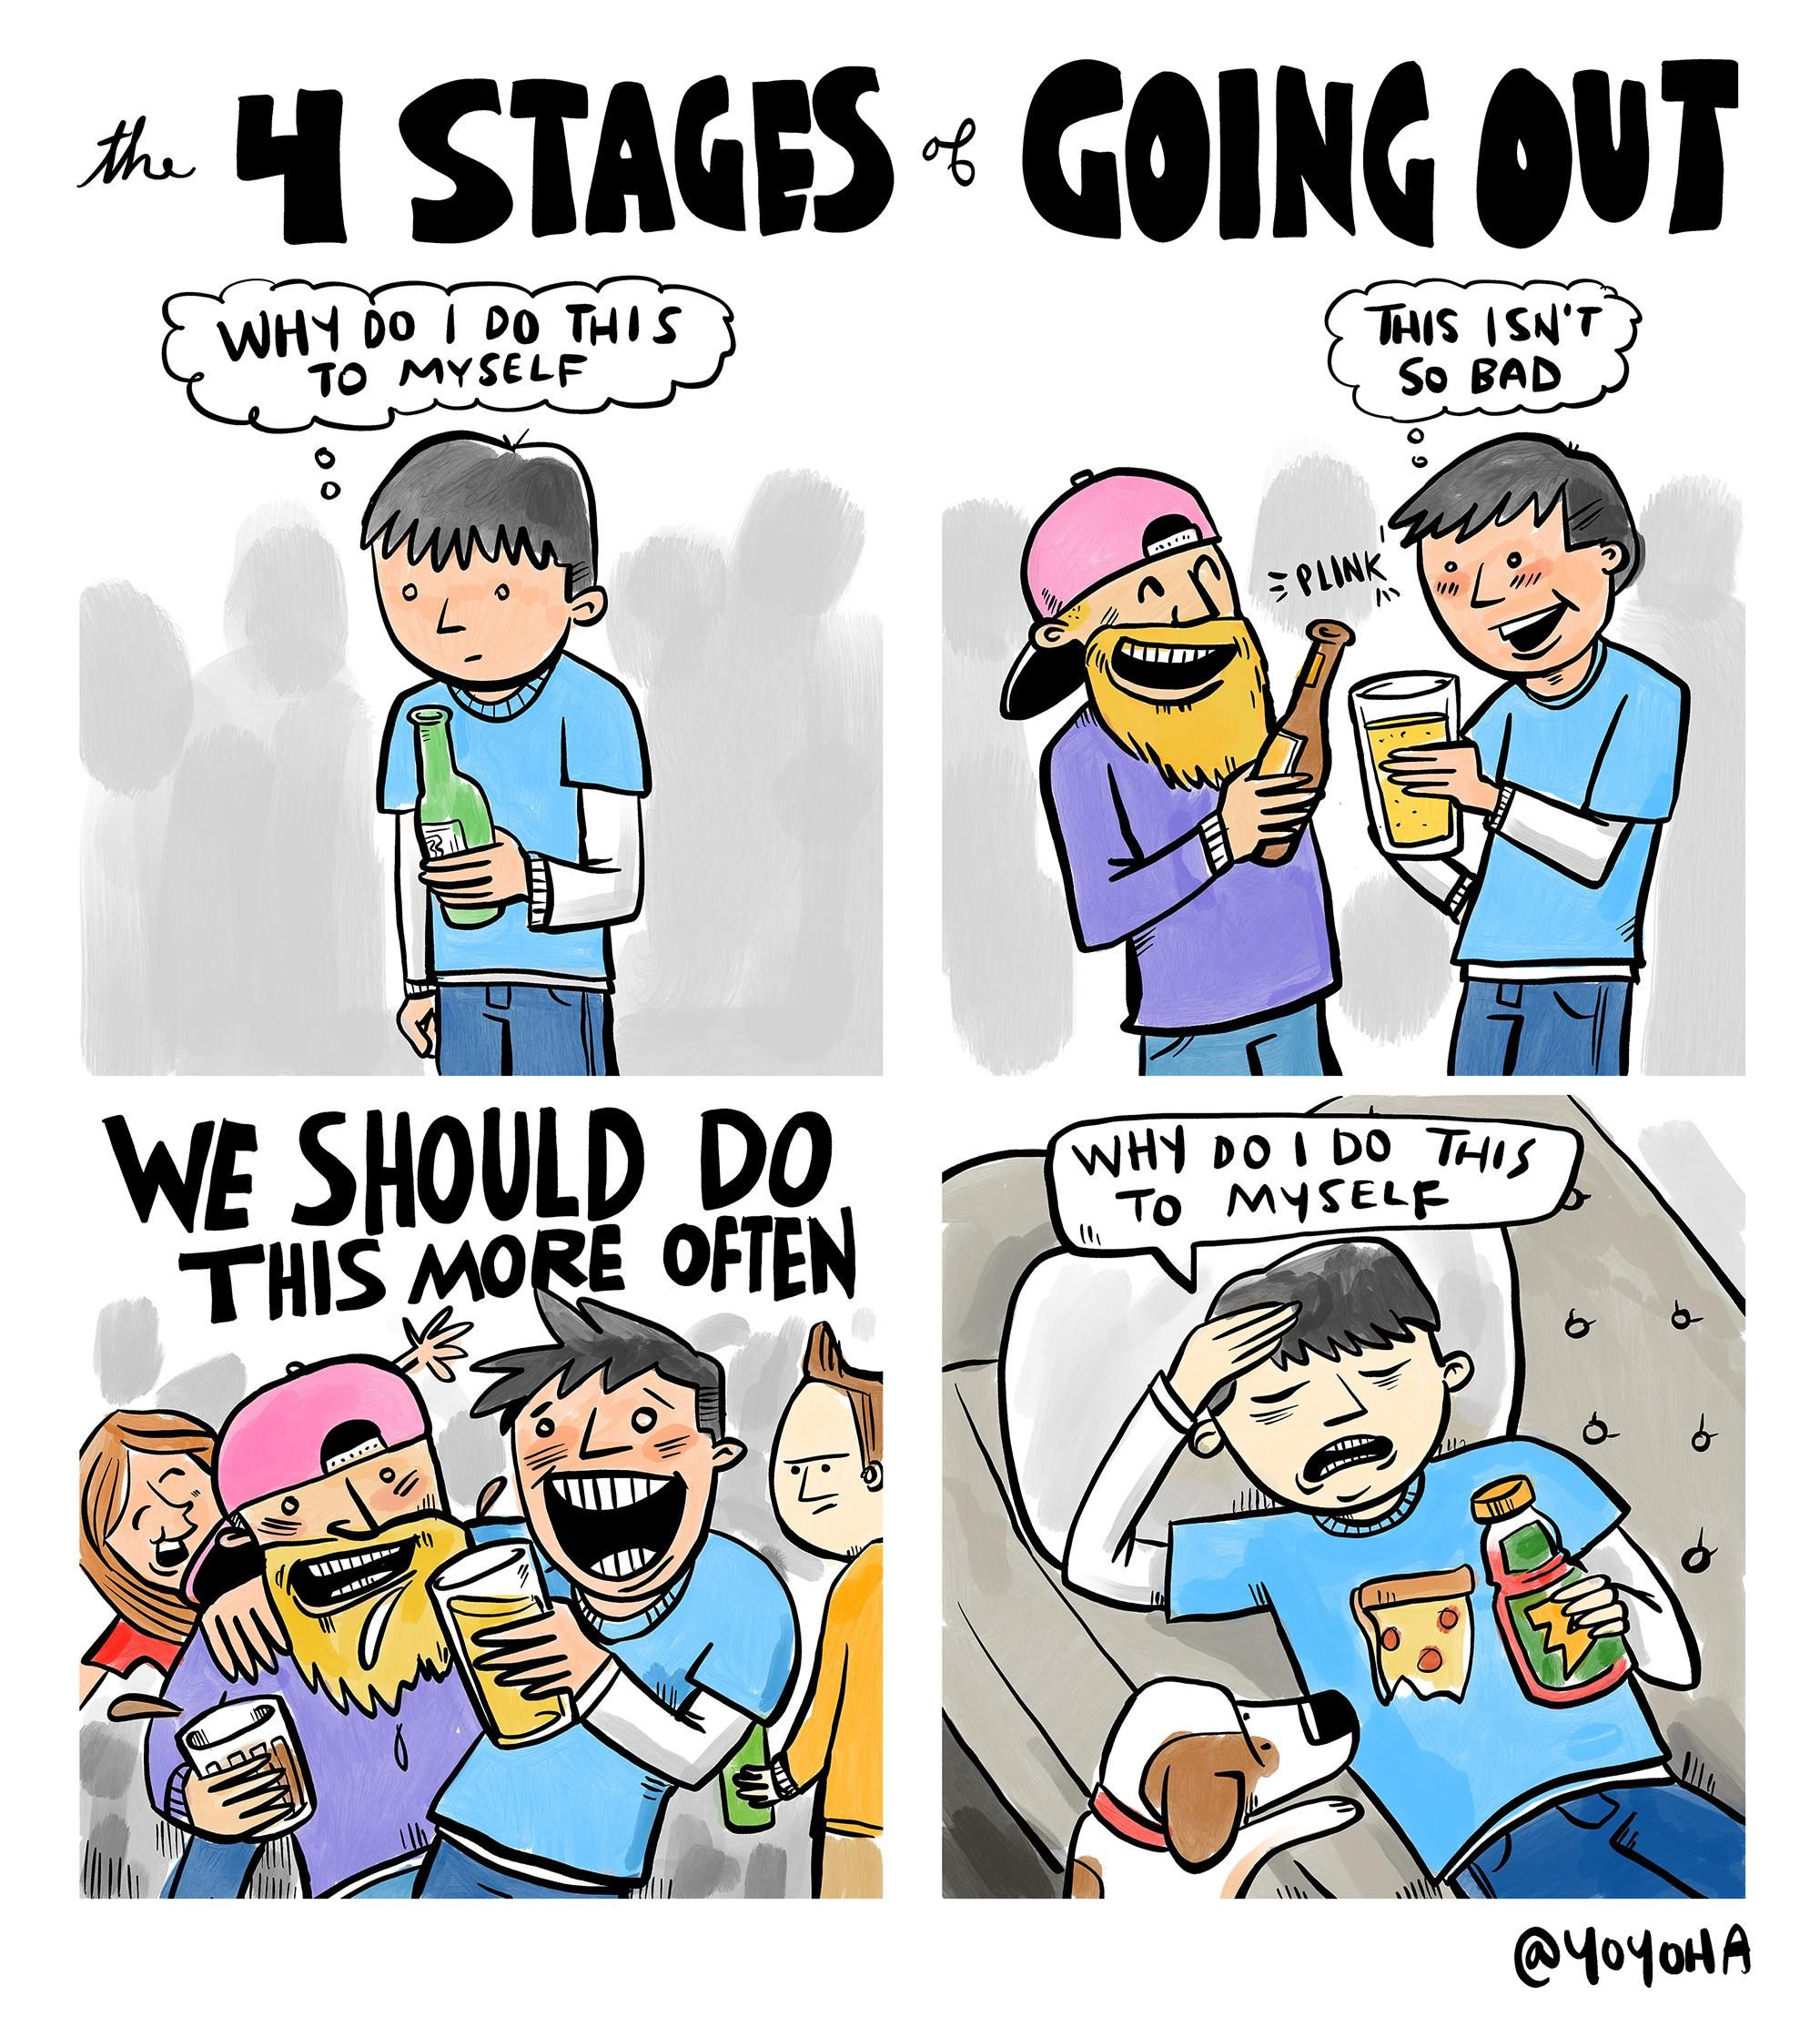 the 4 stages of going out